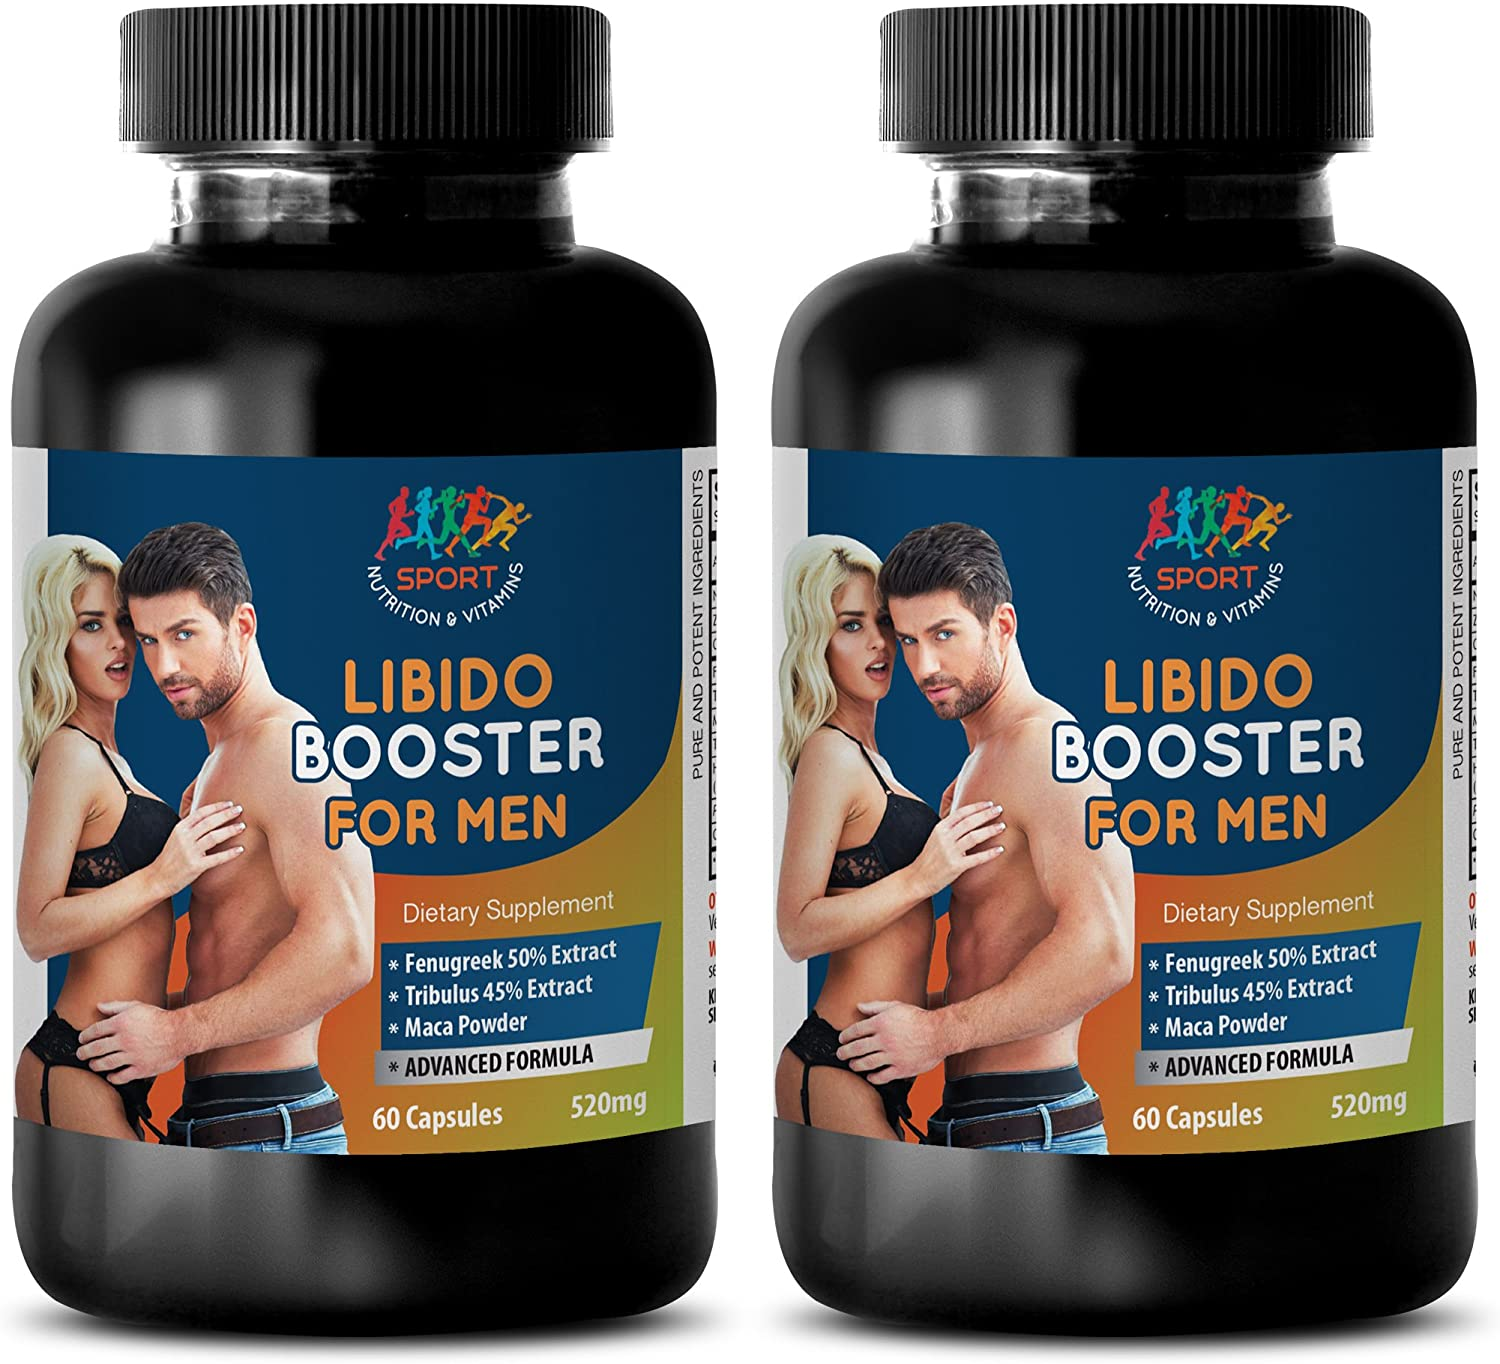 Males natural for libido boosters Natural Ways